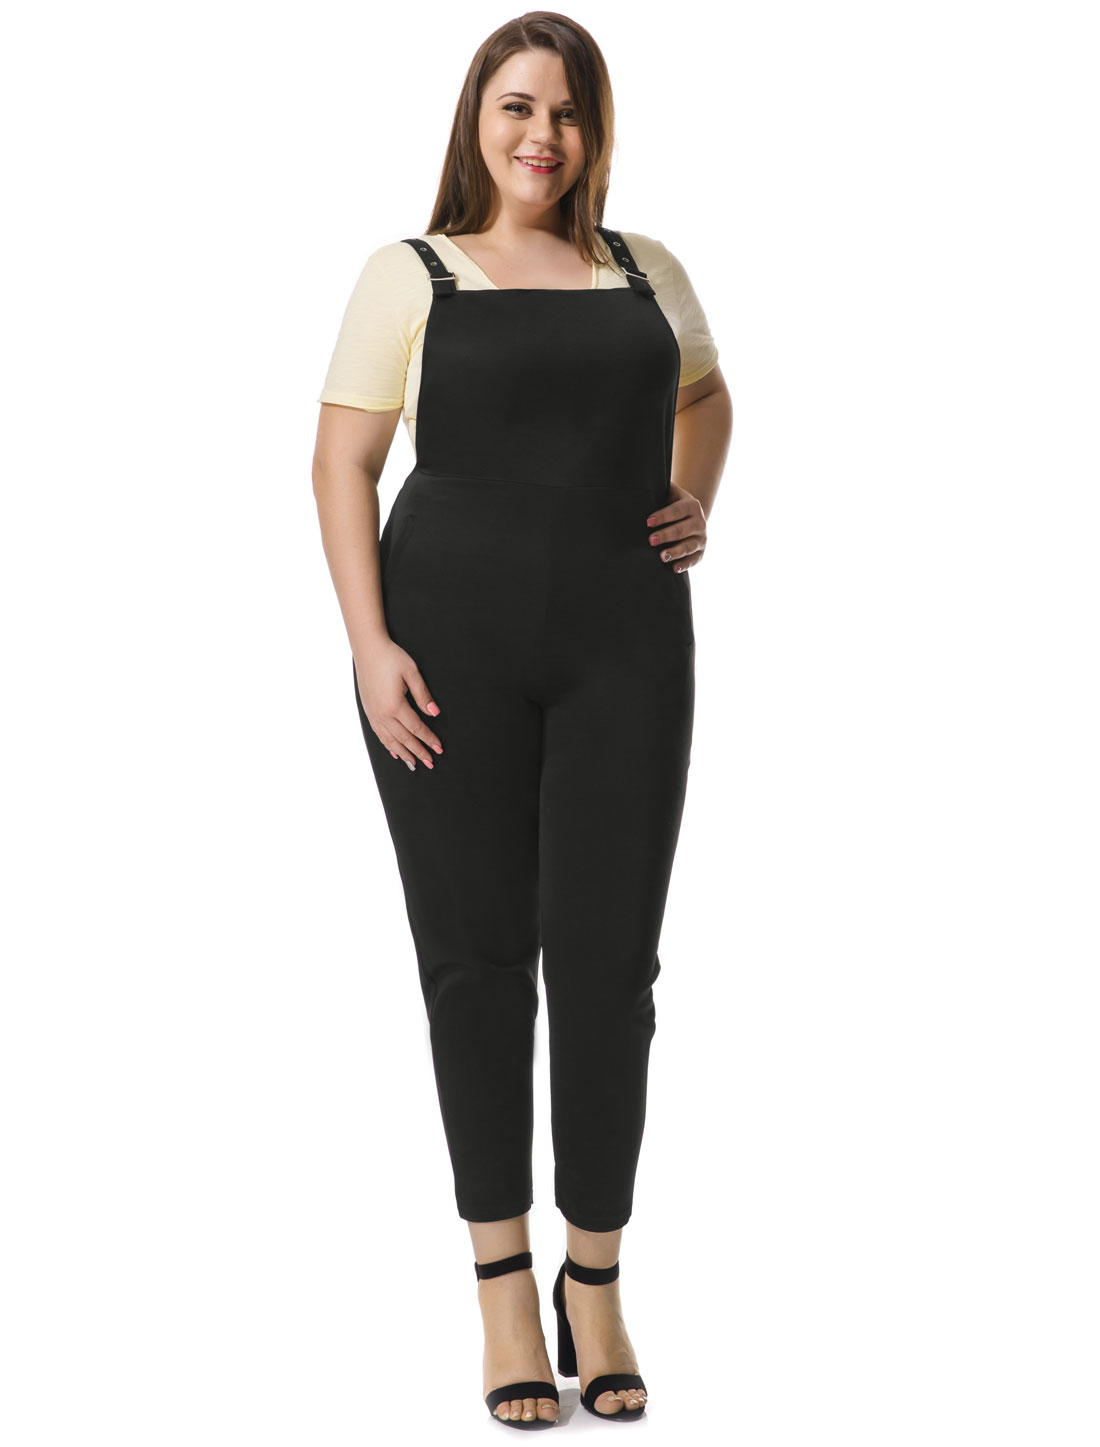 Women Plus Size Pinafore Overalls w Side Pockets Black 1X